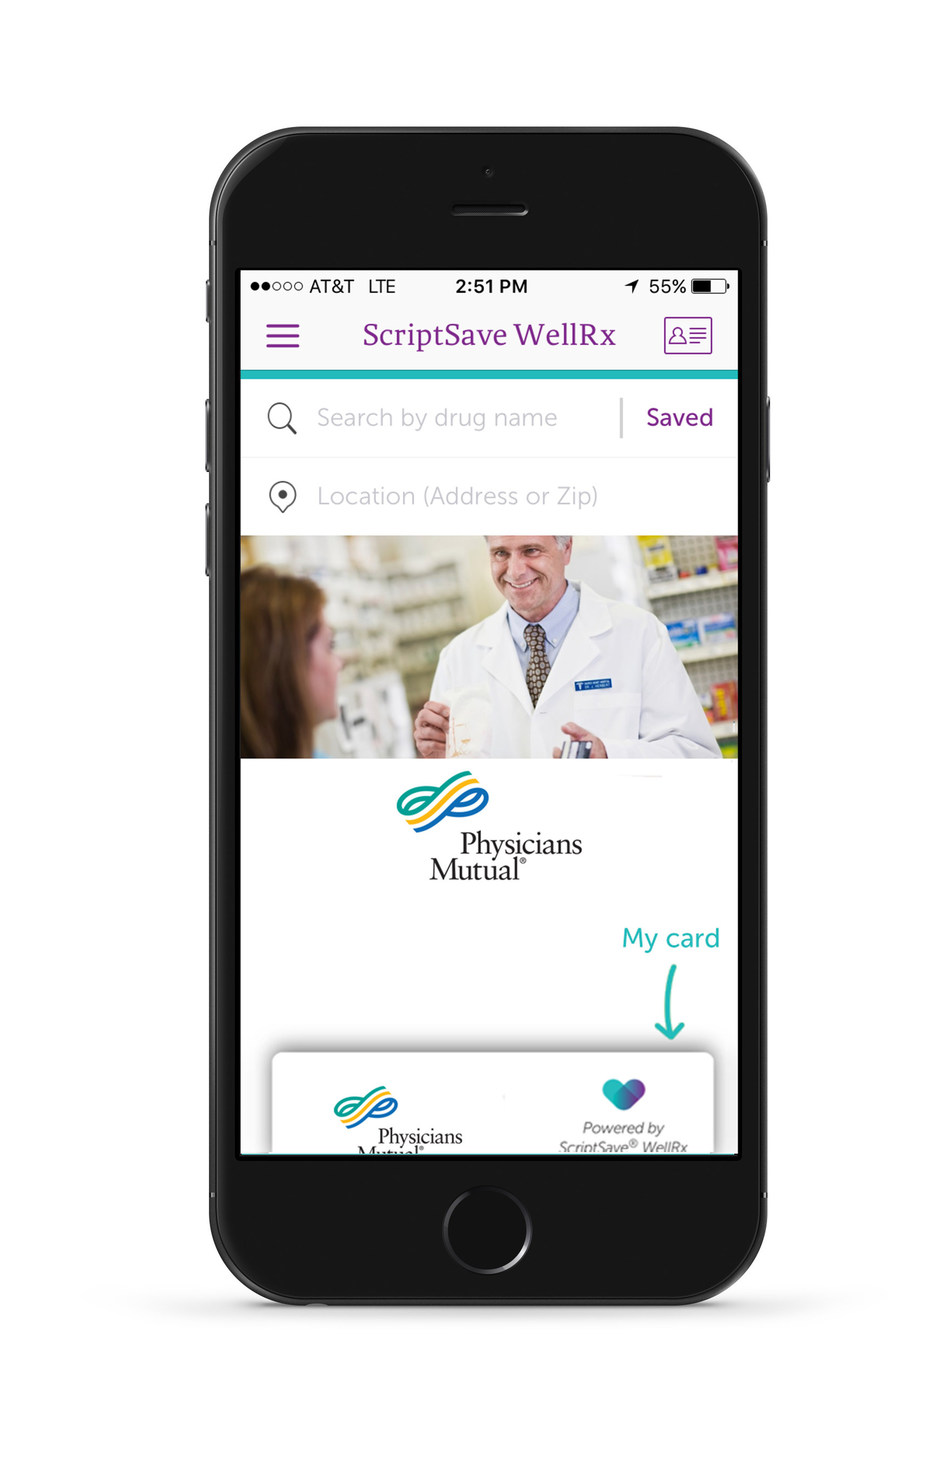 Physicians Mutual app powered by ScriptSave WellRx